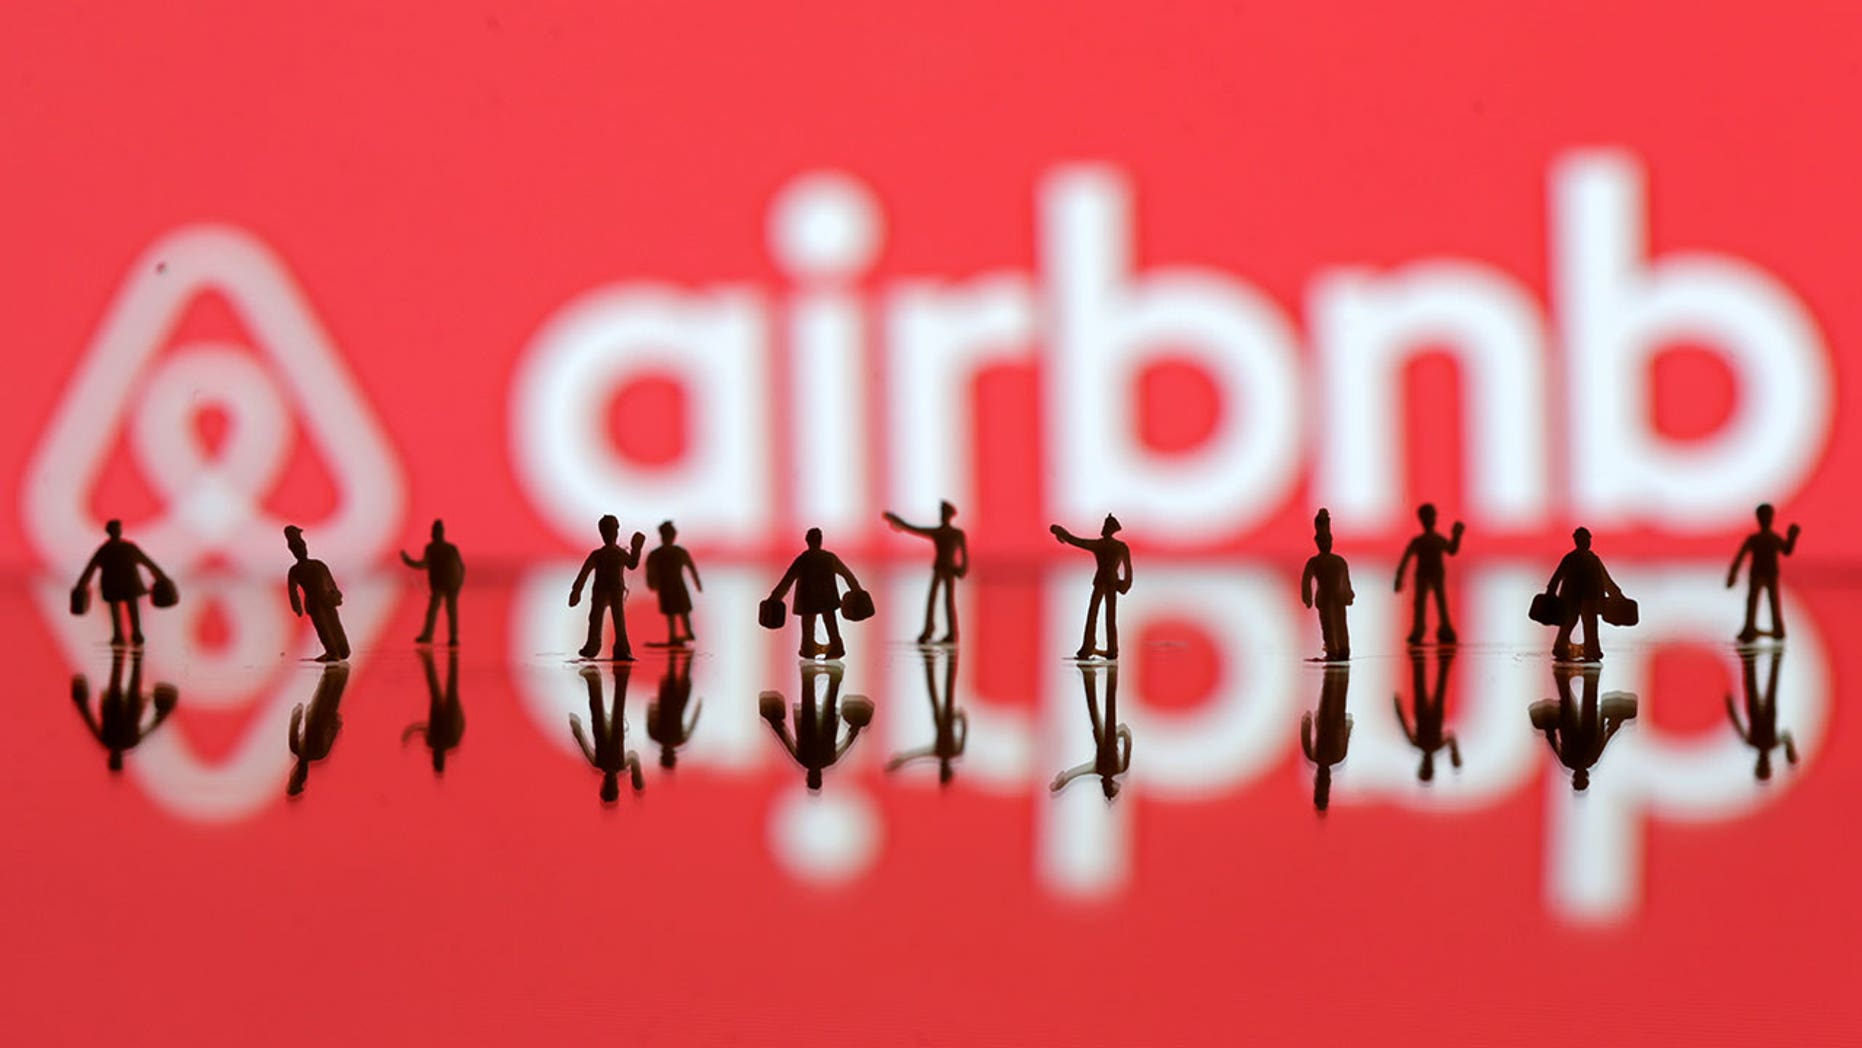 Airbnb is trying to lure a demographic that usually prefers hotel rooms.